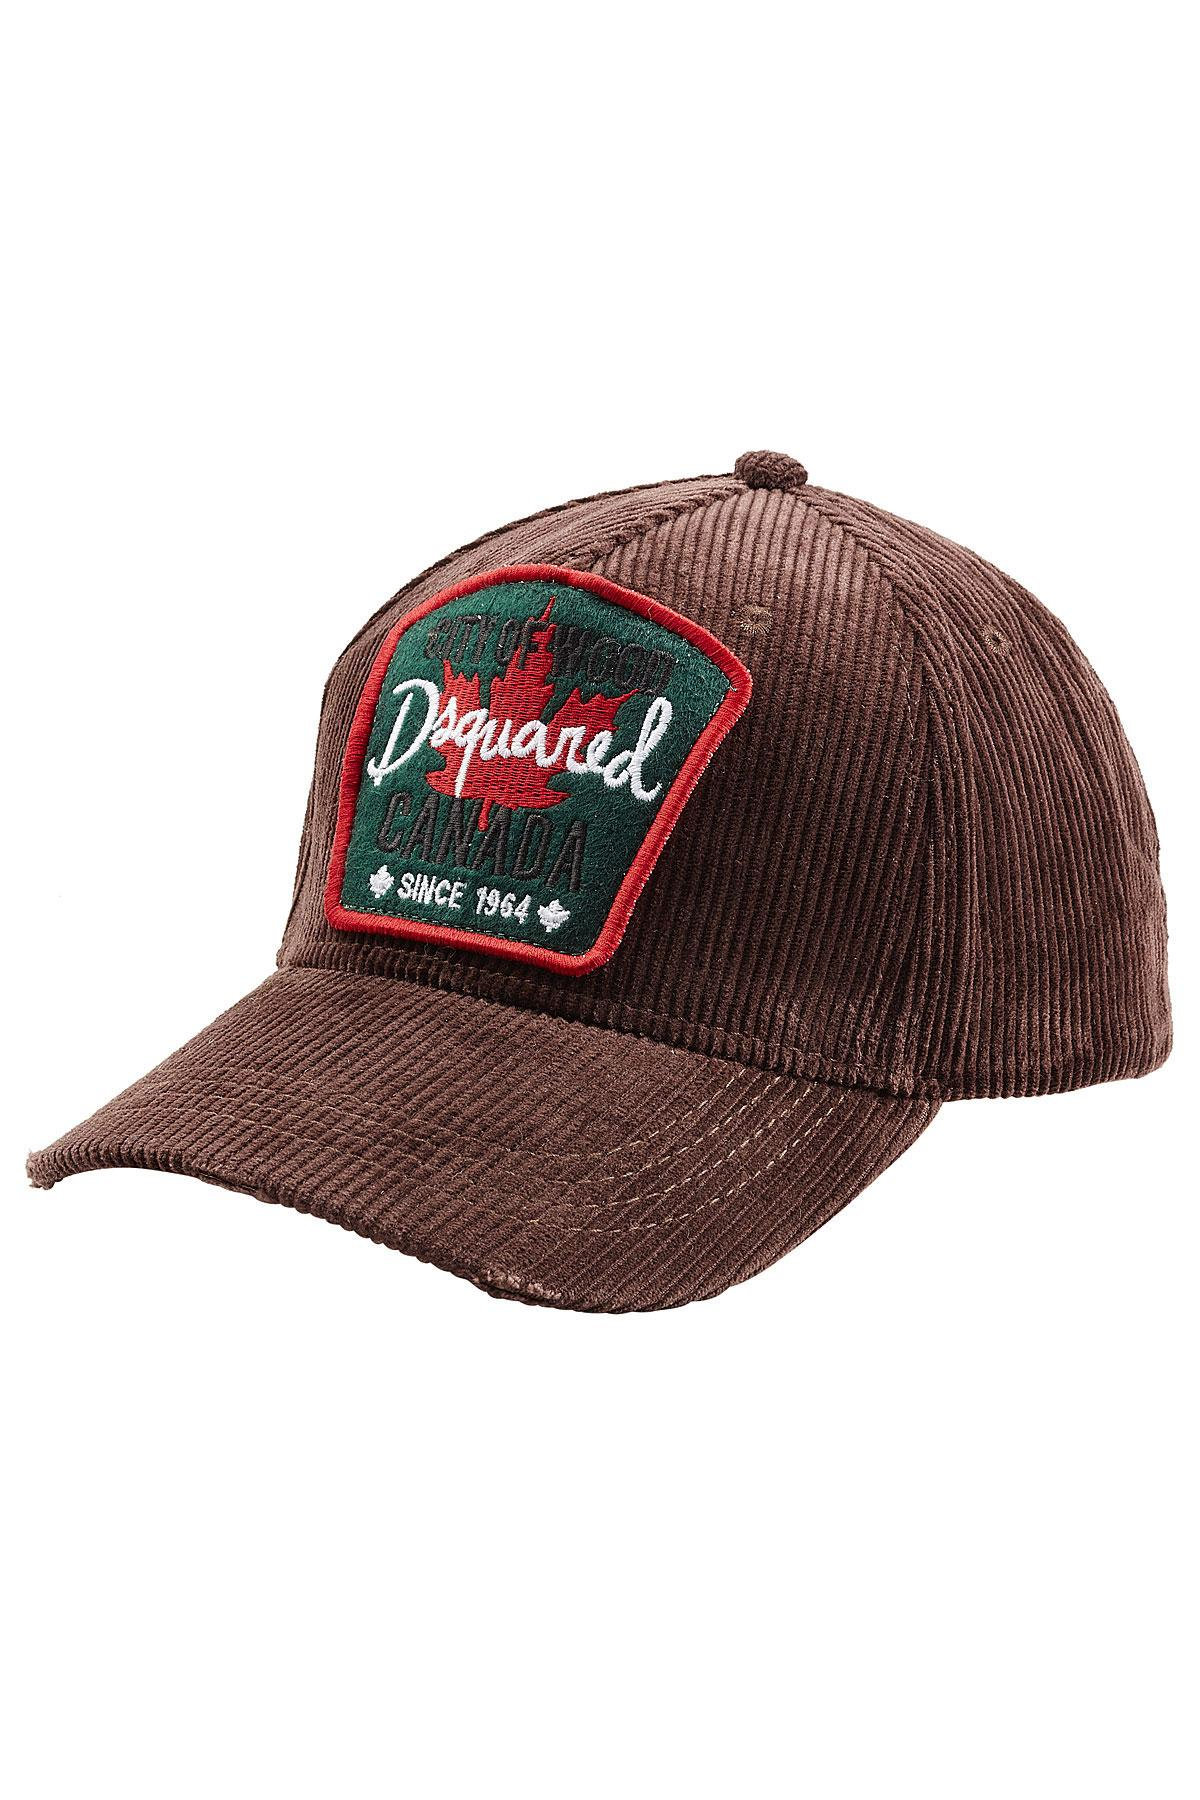 Find great deals on eBay for mens corduroy hats. Shop with confidence.